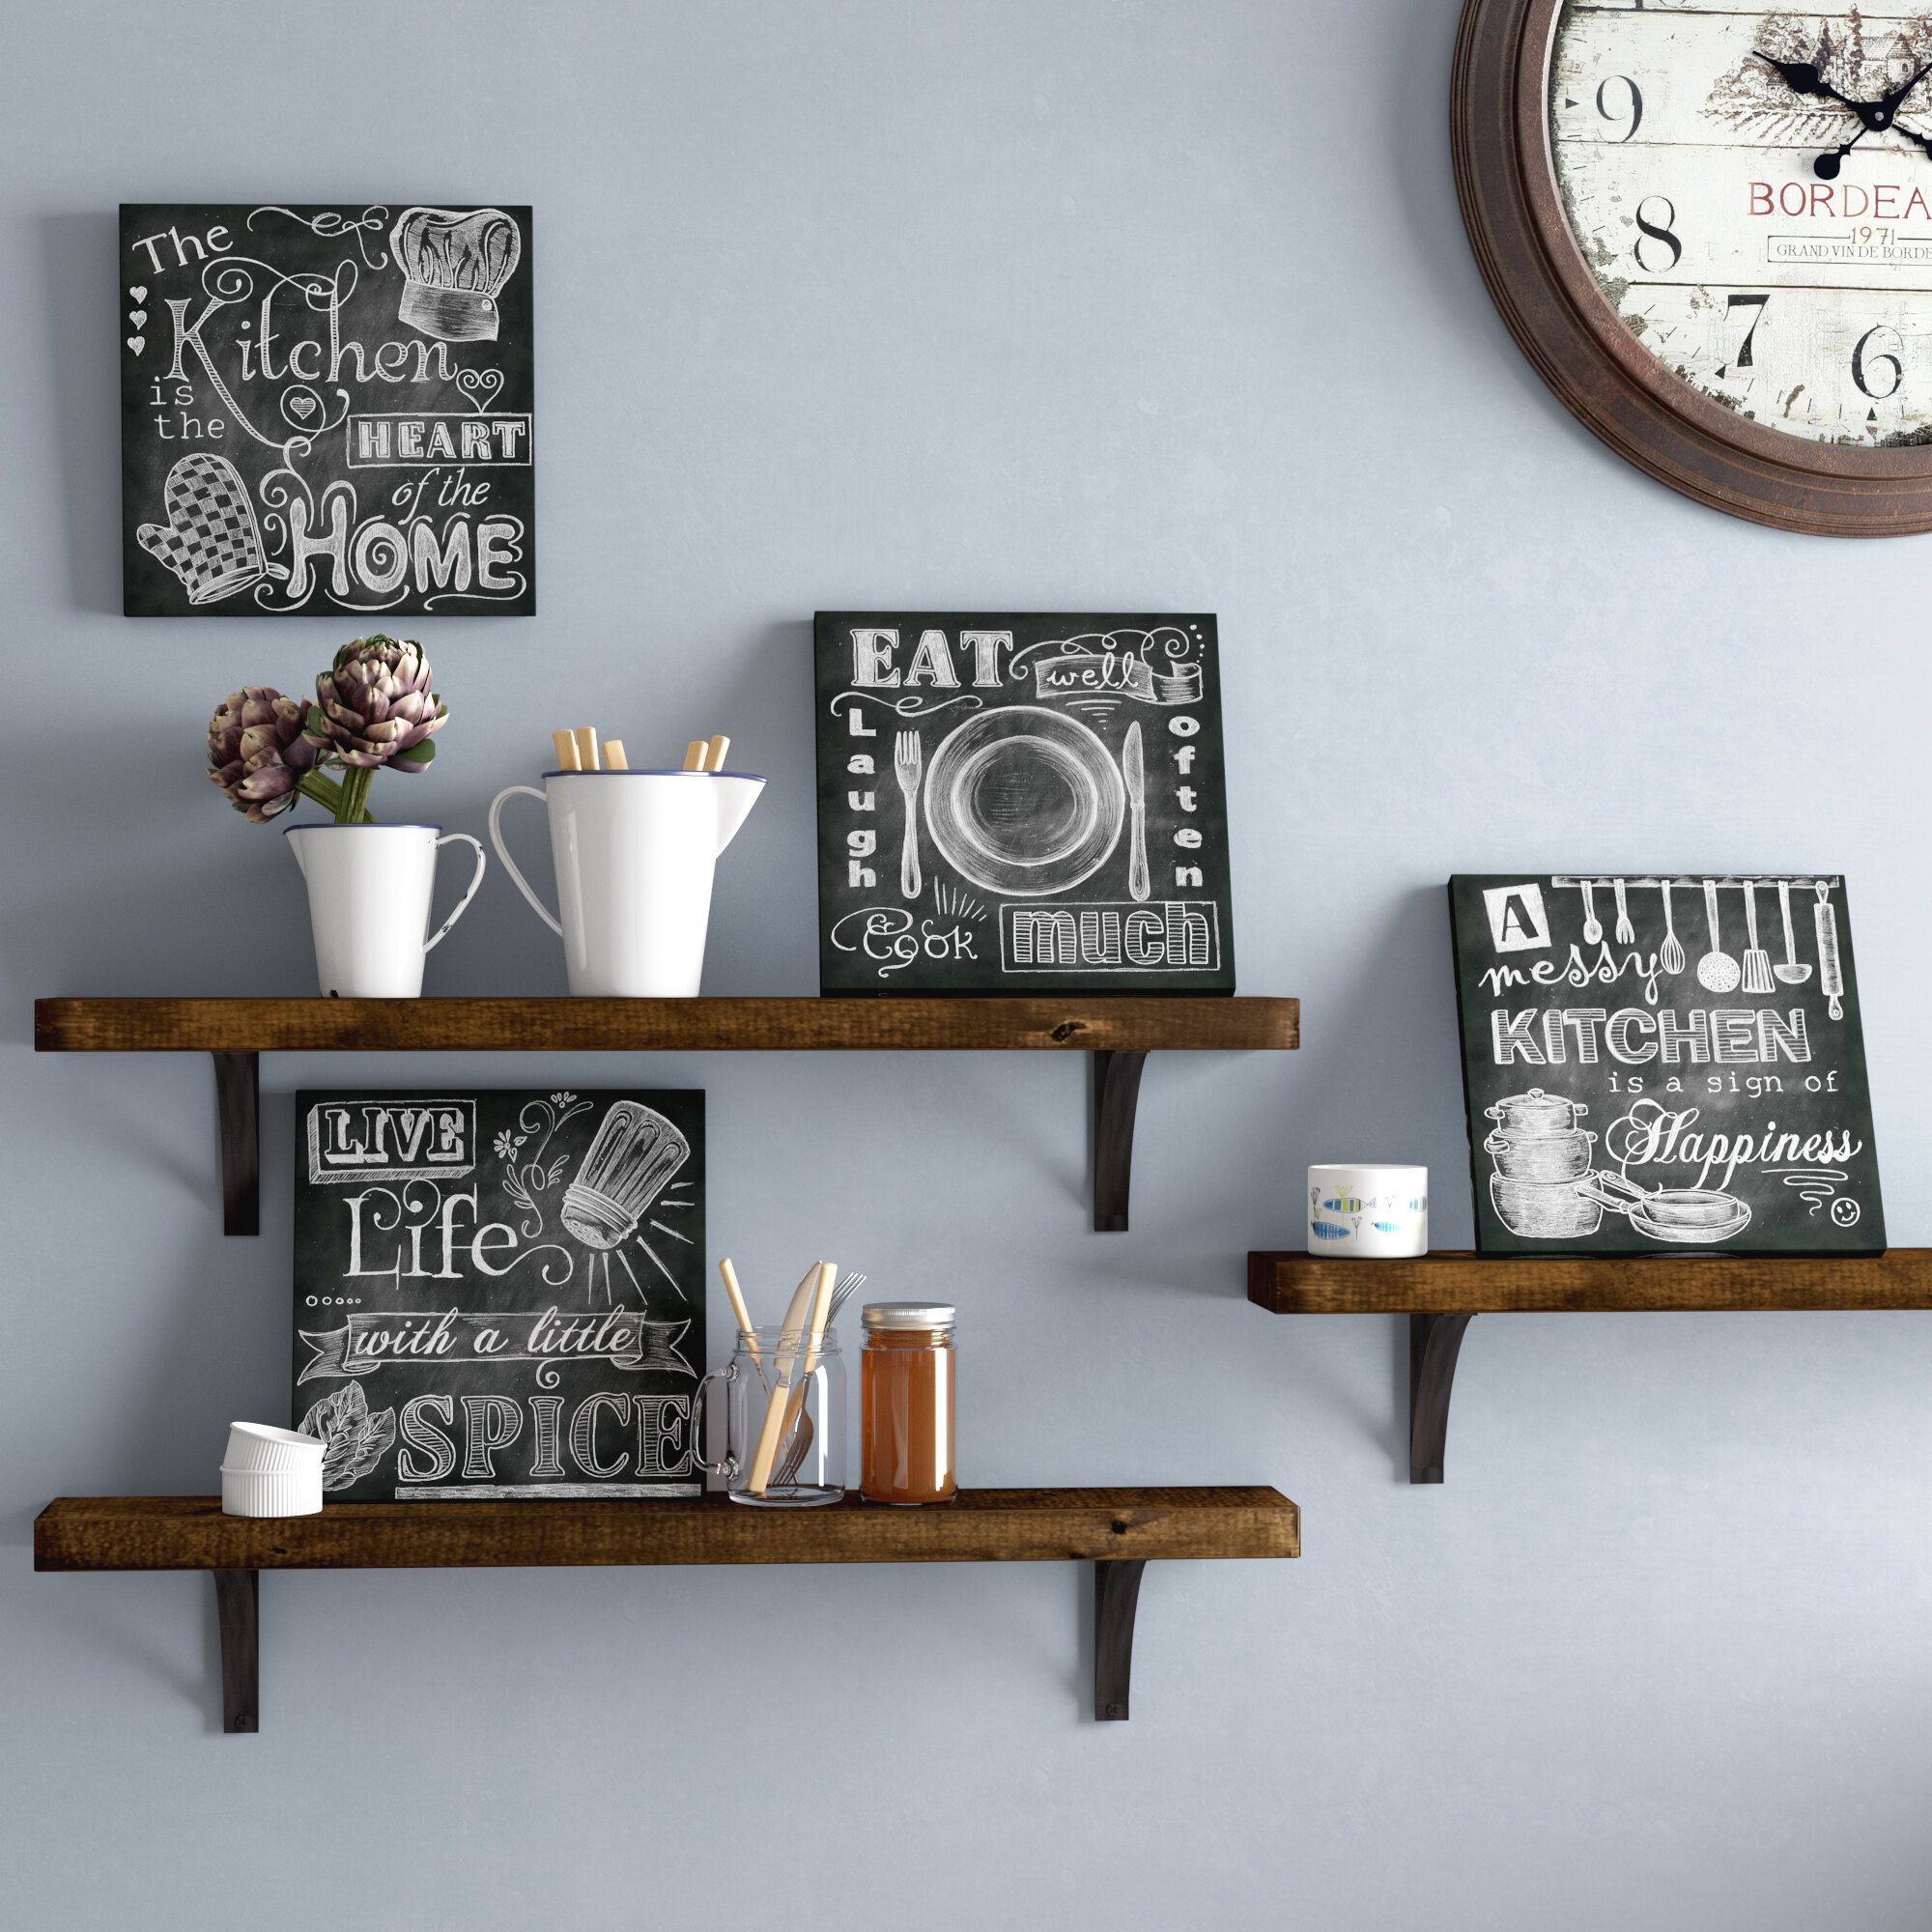 Messy Office Kitchen: Darby Home Co 'Beautiful, Fun, Chalkboard Kitchen Signs